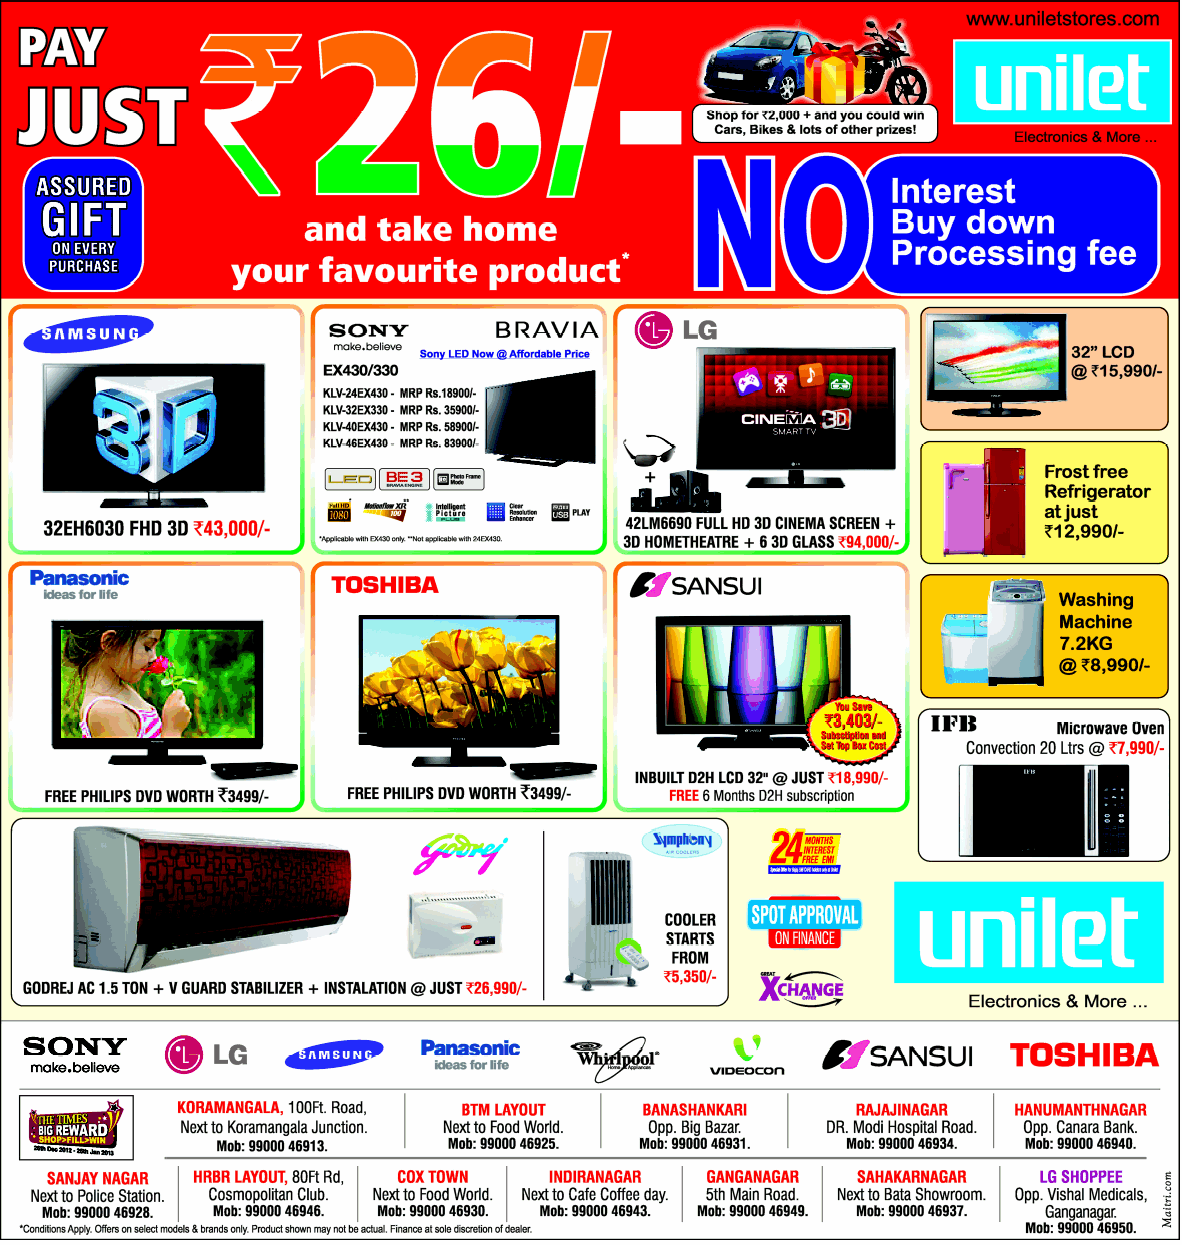 Unilet - Assured Gifts on Every Purchase